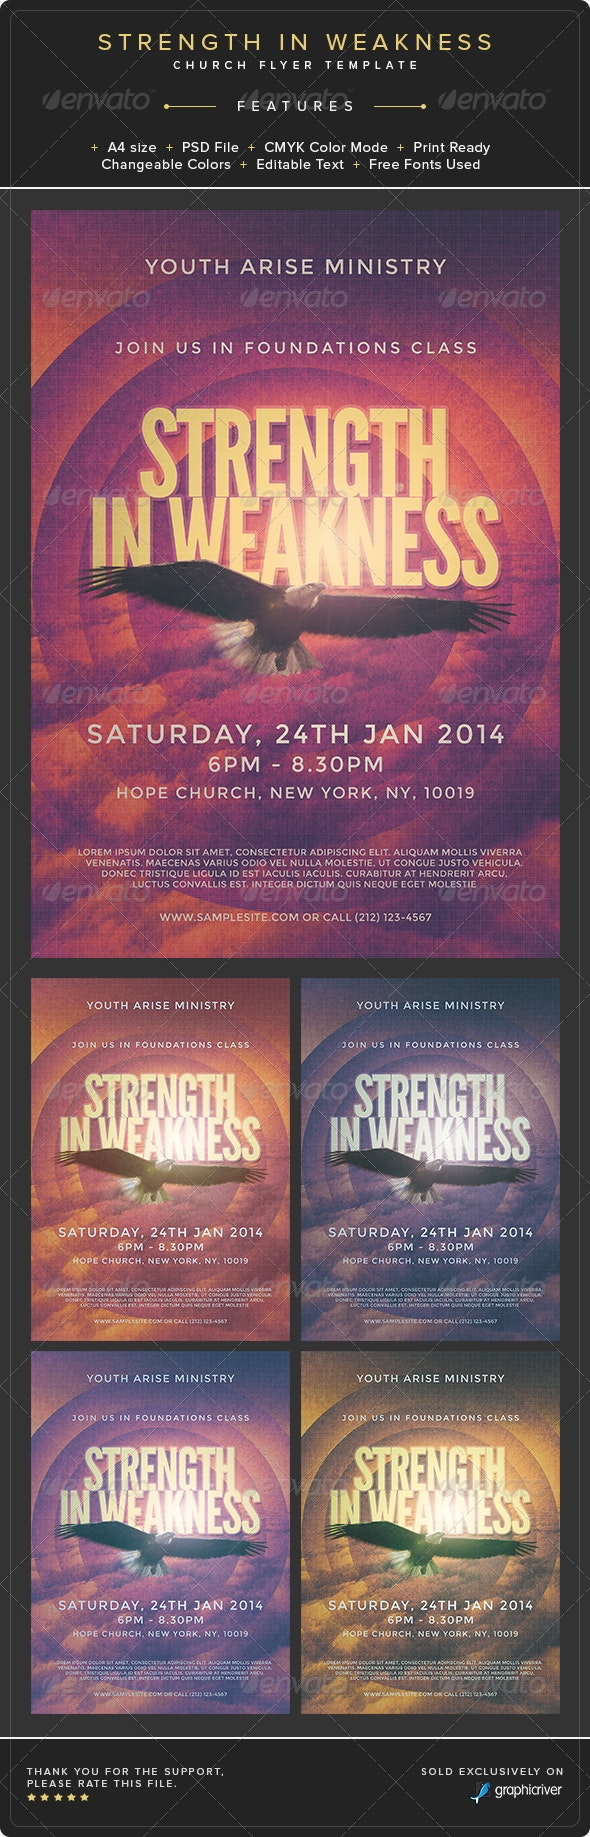 Strength in Weakness Church Flyer Template - Church Flyers